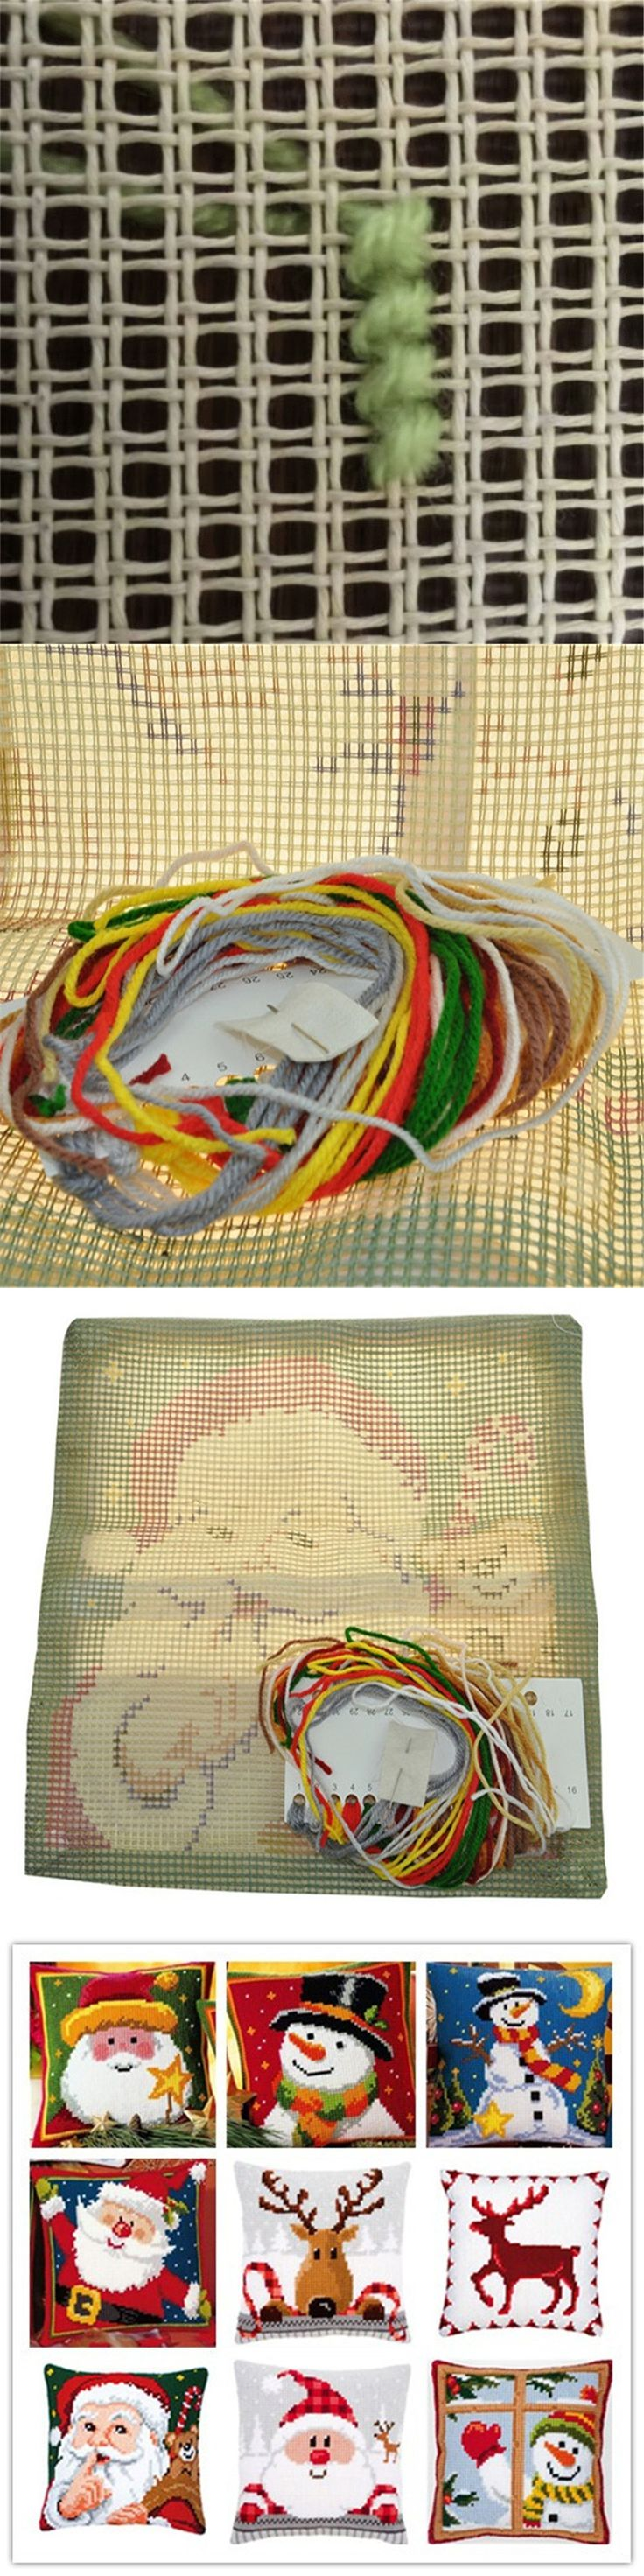 Cross Stitch Pillow Mat DIY Craft Christmas 42CM by 42CM Latch Hook Kit  Needlework Crocheting Cushion Embroidery